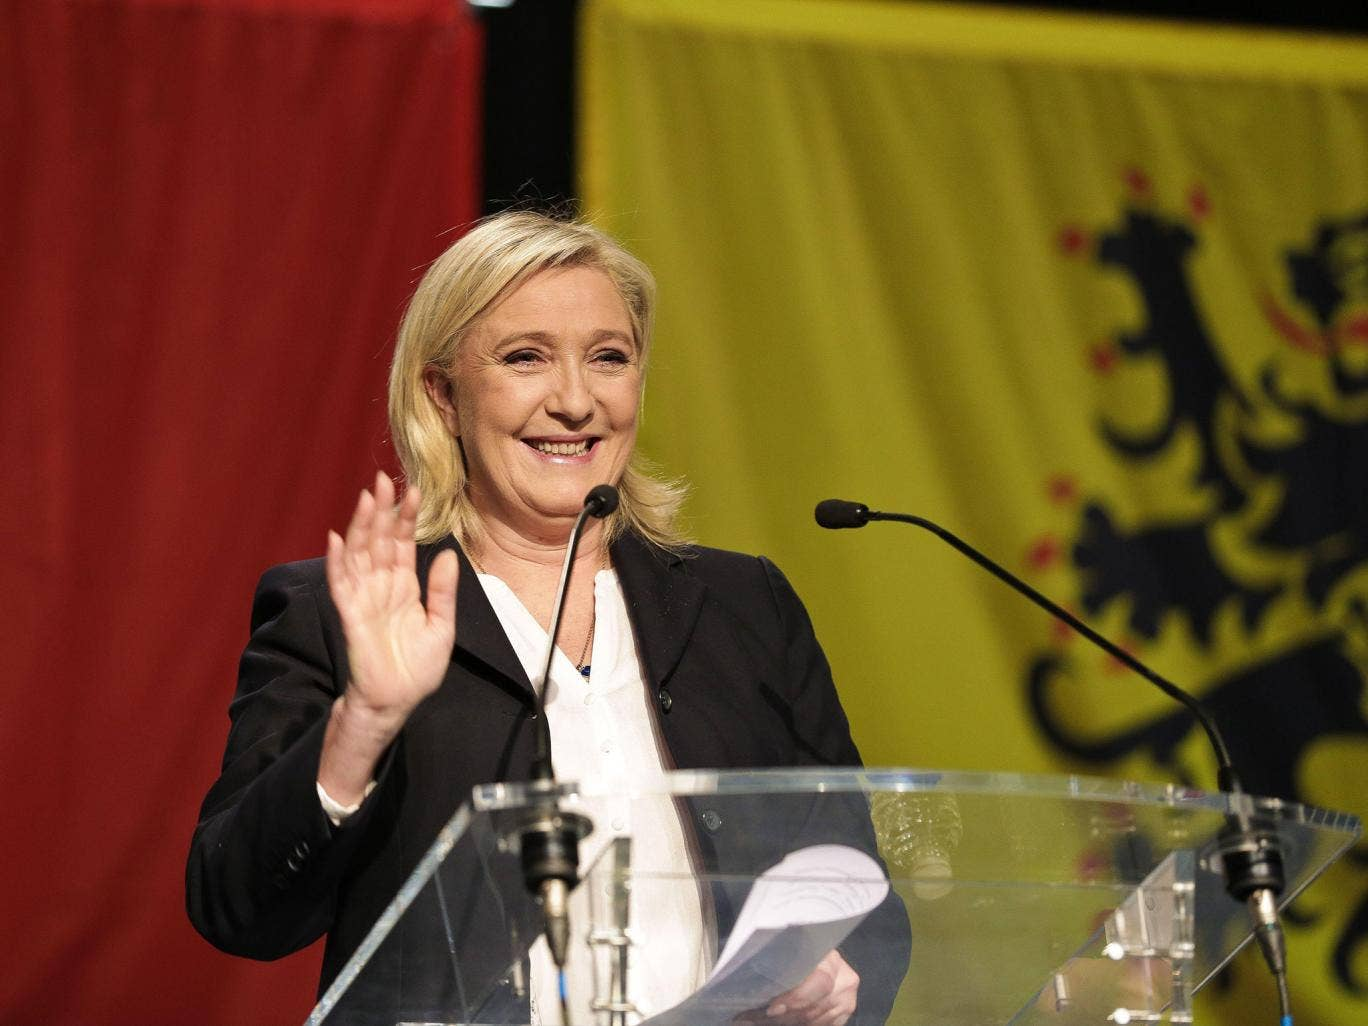 This is democracy – Marine Le Pen deserves the test of French power ...